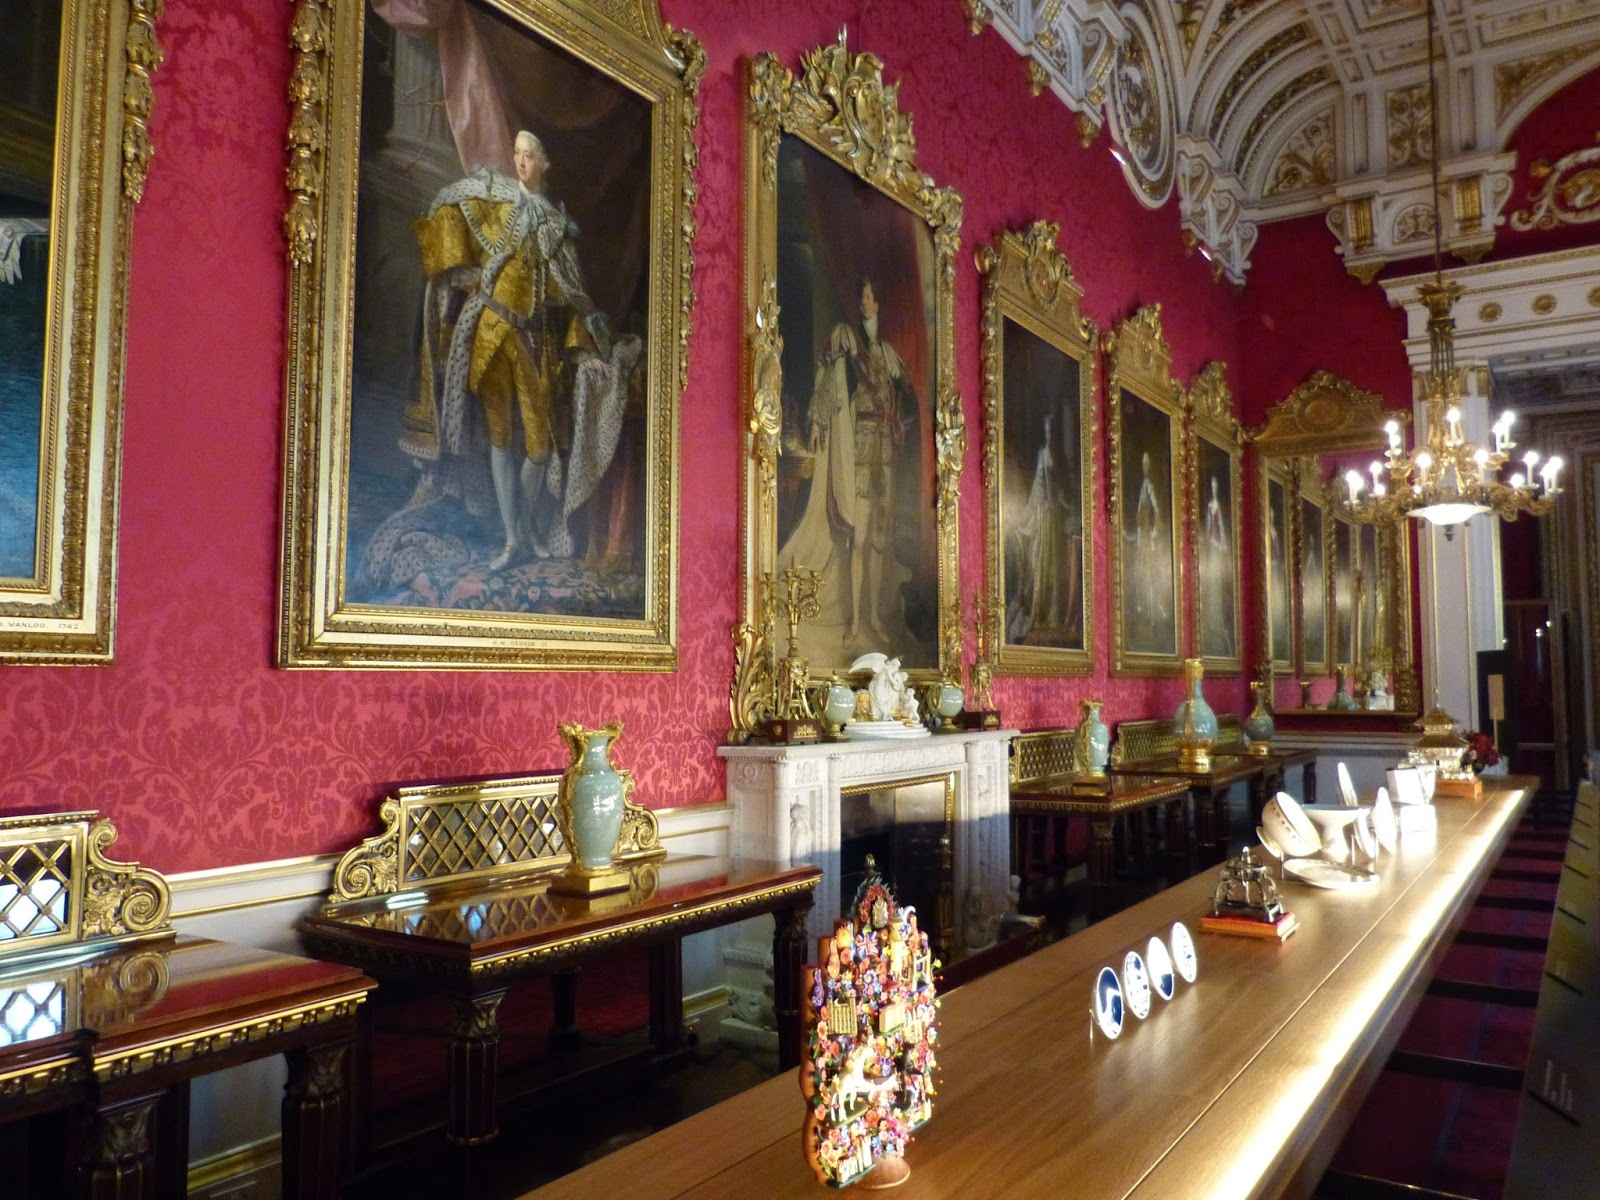 Palace dining room